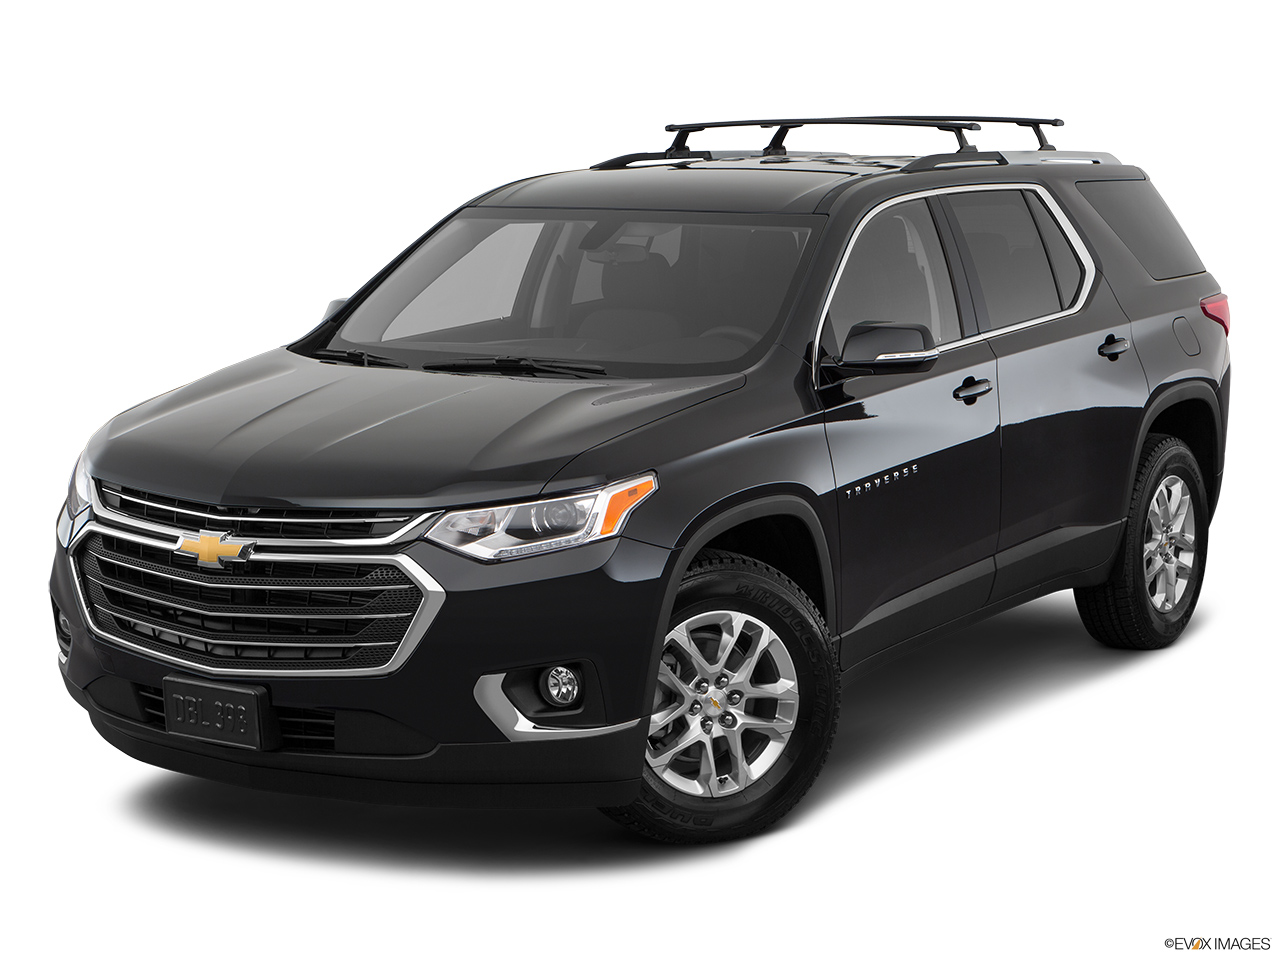 Chevrolet Traverse 2018 3.6L LT AWD in UAE: New Car Prices ...